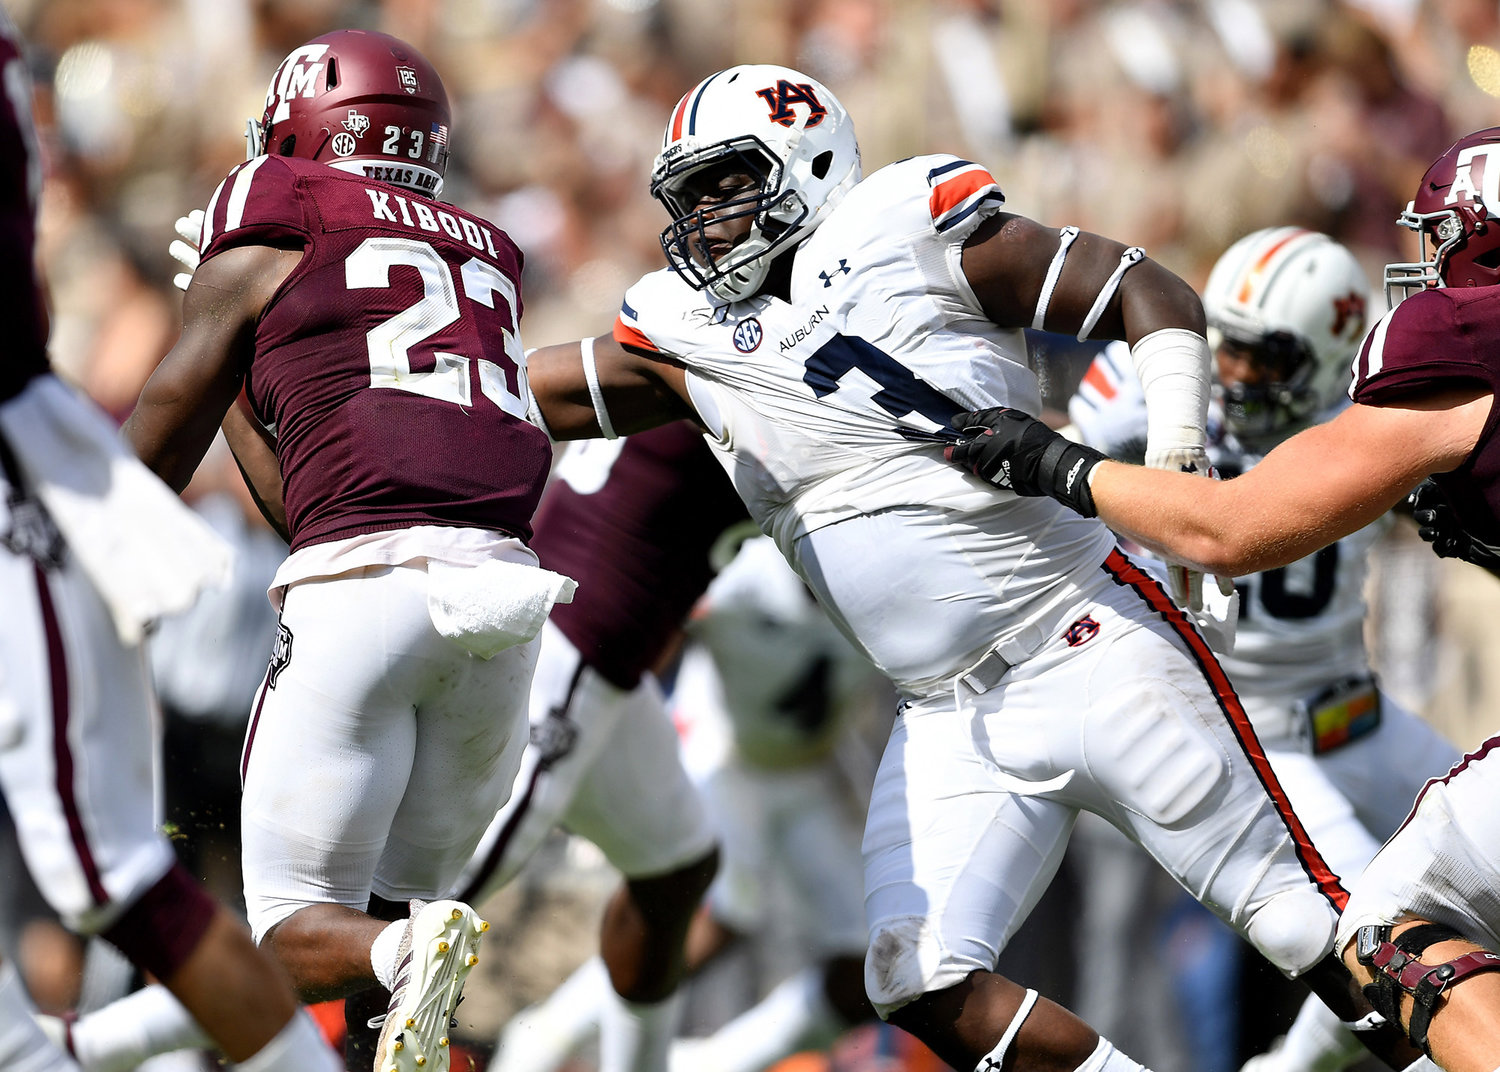 Auburn Tigers defensive end Marlon Davidson (3) reaches out to arm tackle Texas A&M Aggies running back Jacob Kibodi (23) during the first half of an NCAA football game Saturday, Sept. 21, 2019, at Kyle Field in College Station Texas. Auburn wins 28-20.